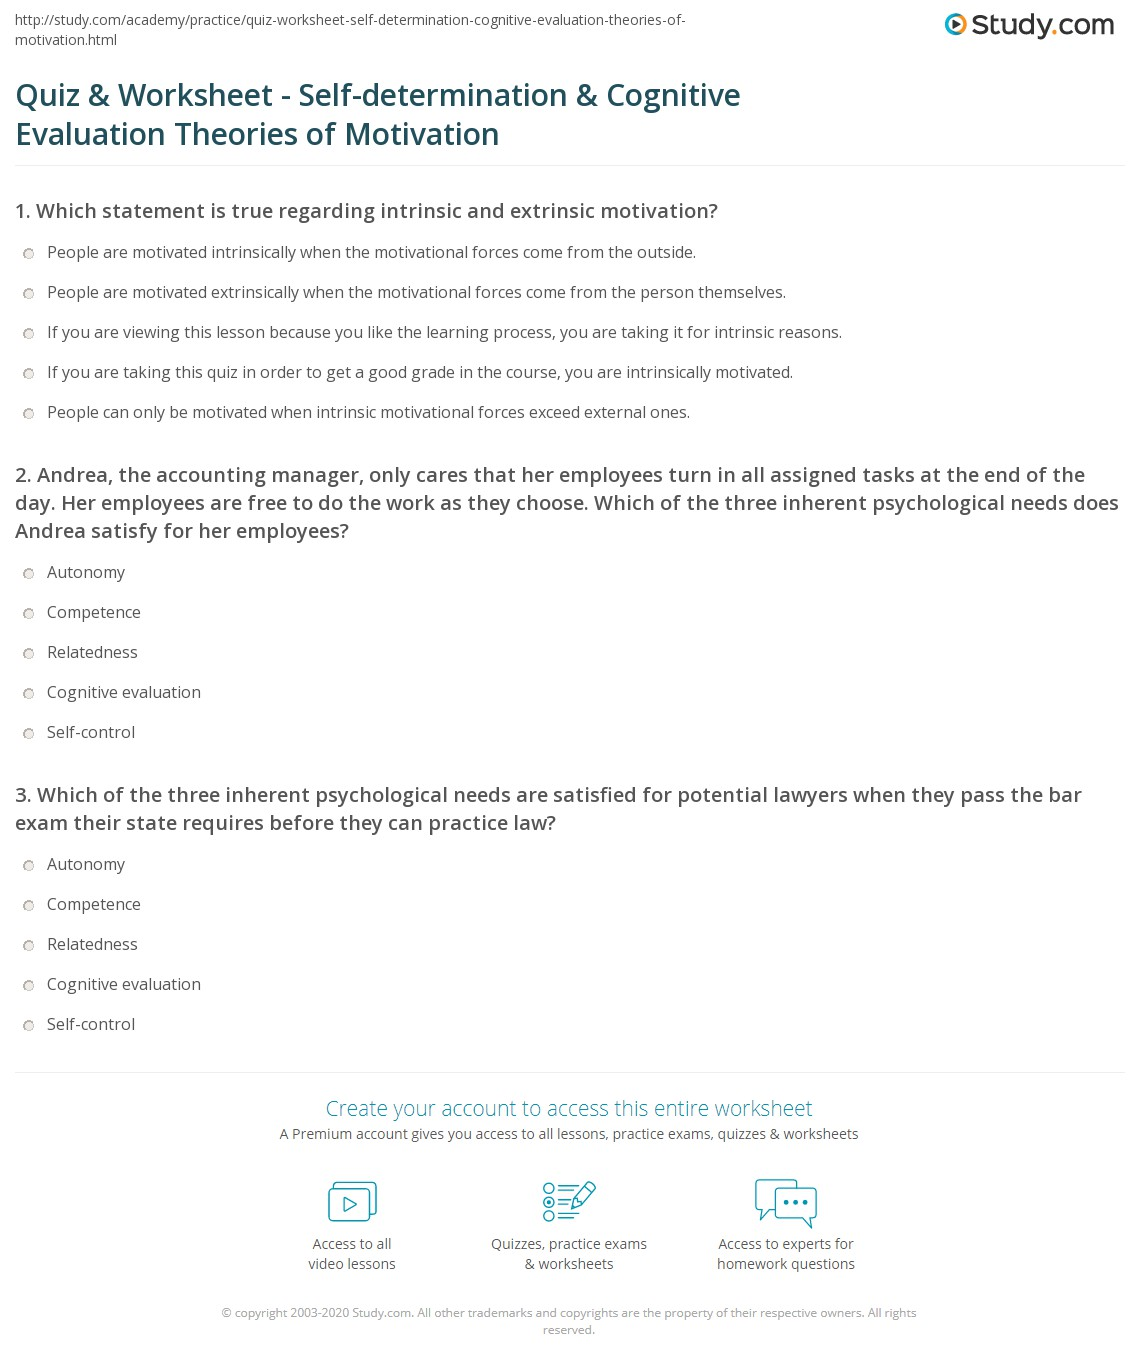 Worksheets Motivation Worksheets quiz worksheet self determination cognitive evaluation 1 andrea the accounting manager only cares that her employees turn in all assigned tasks at end of day are f